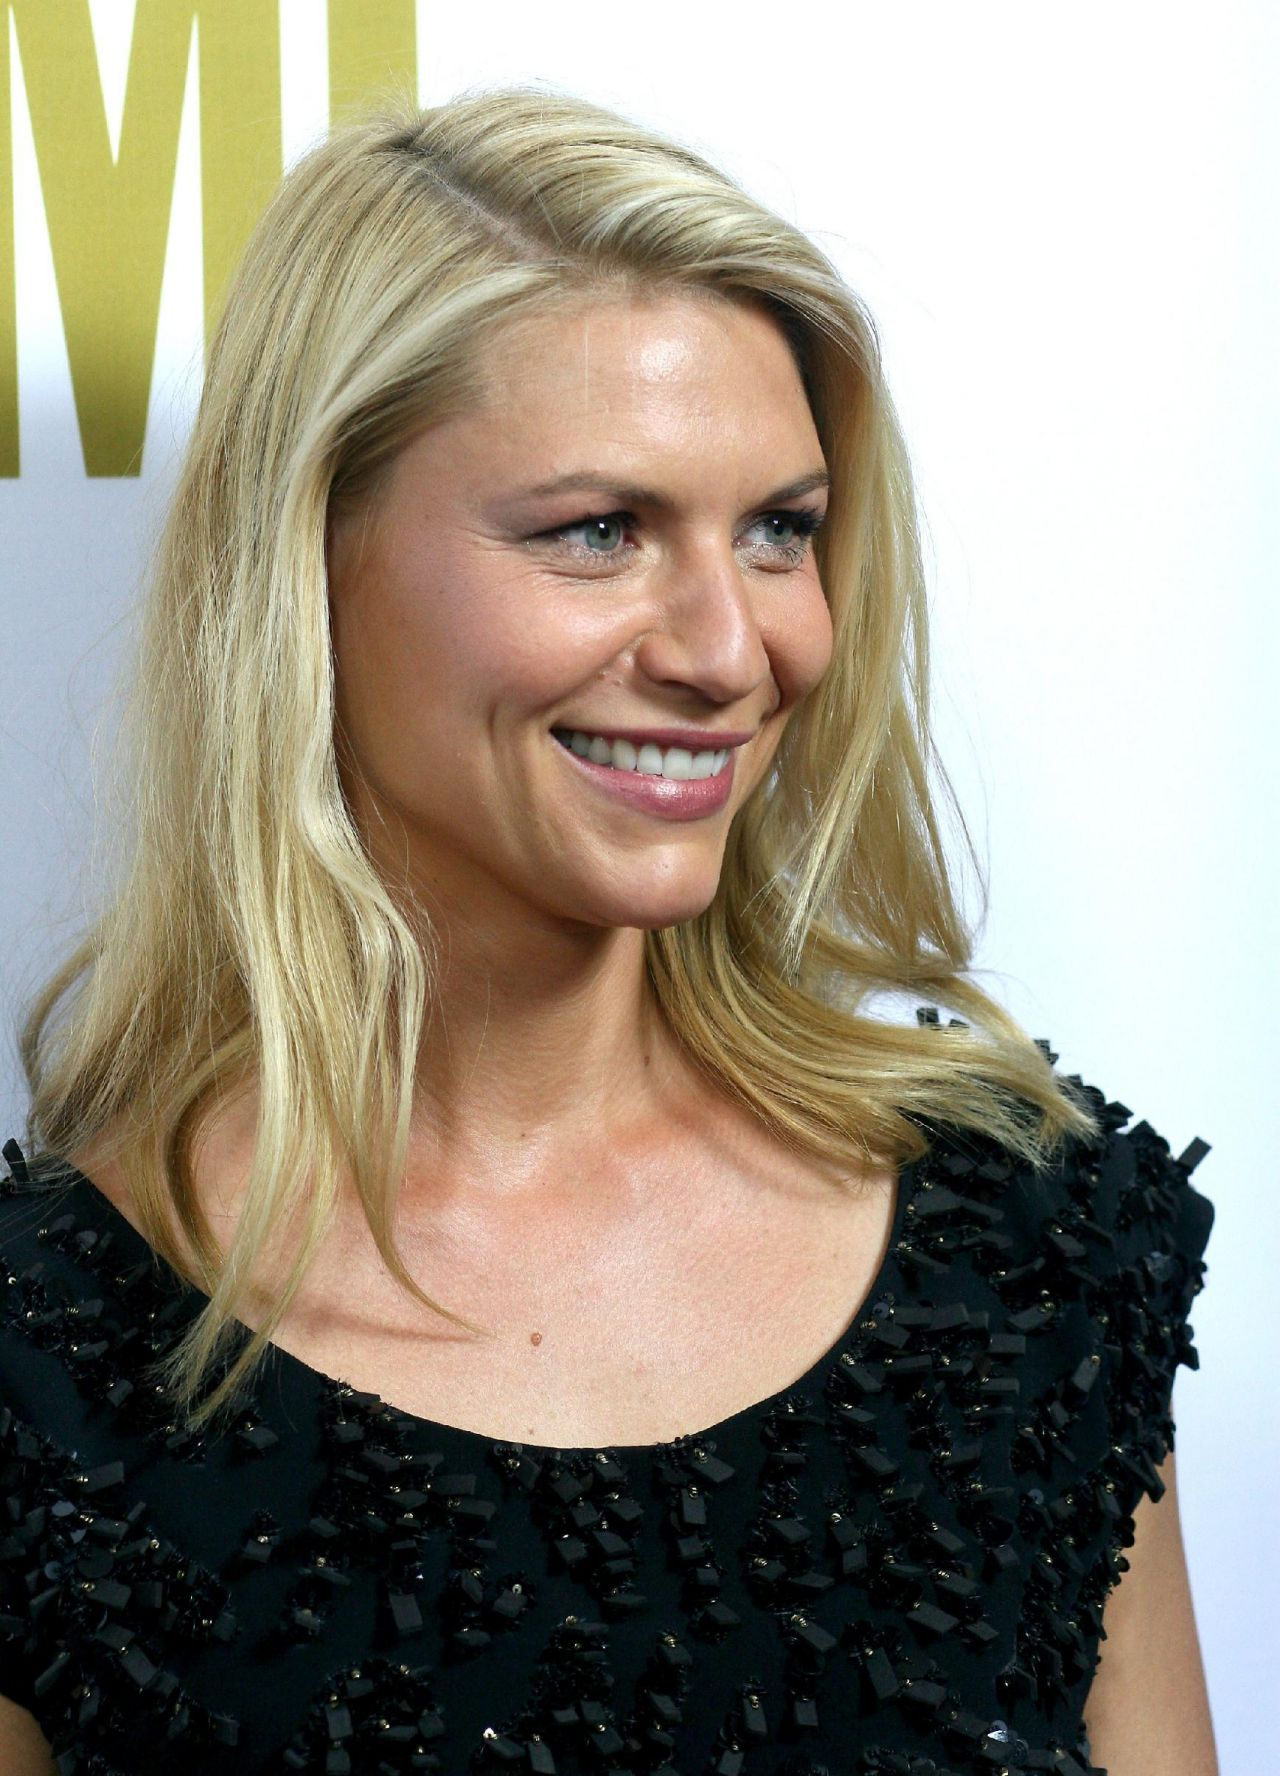 Claire Danes – Showtime's Emmy Eve 2015 in Los Angeles Claire Danes